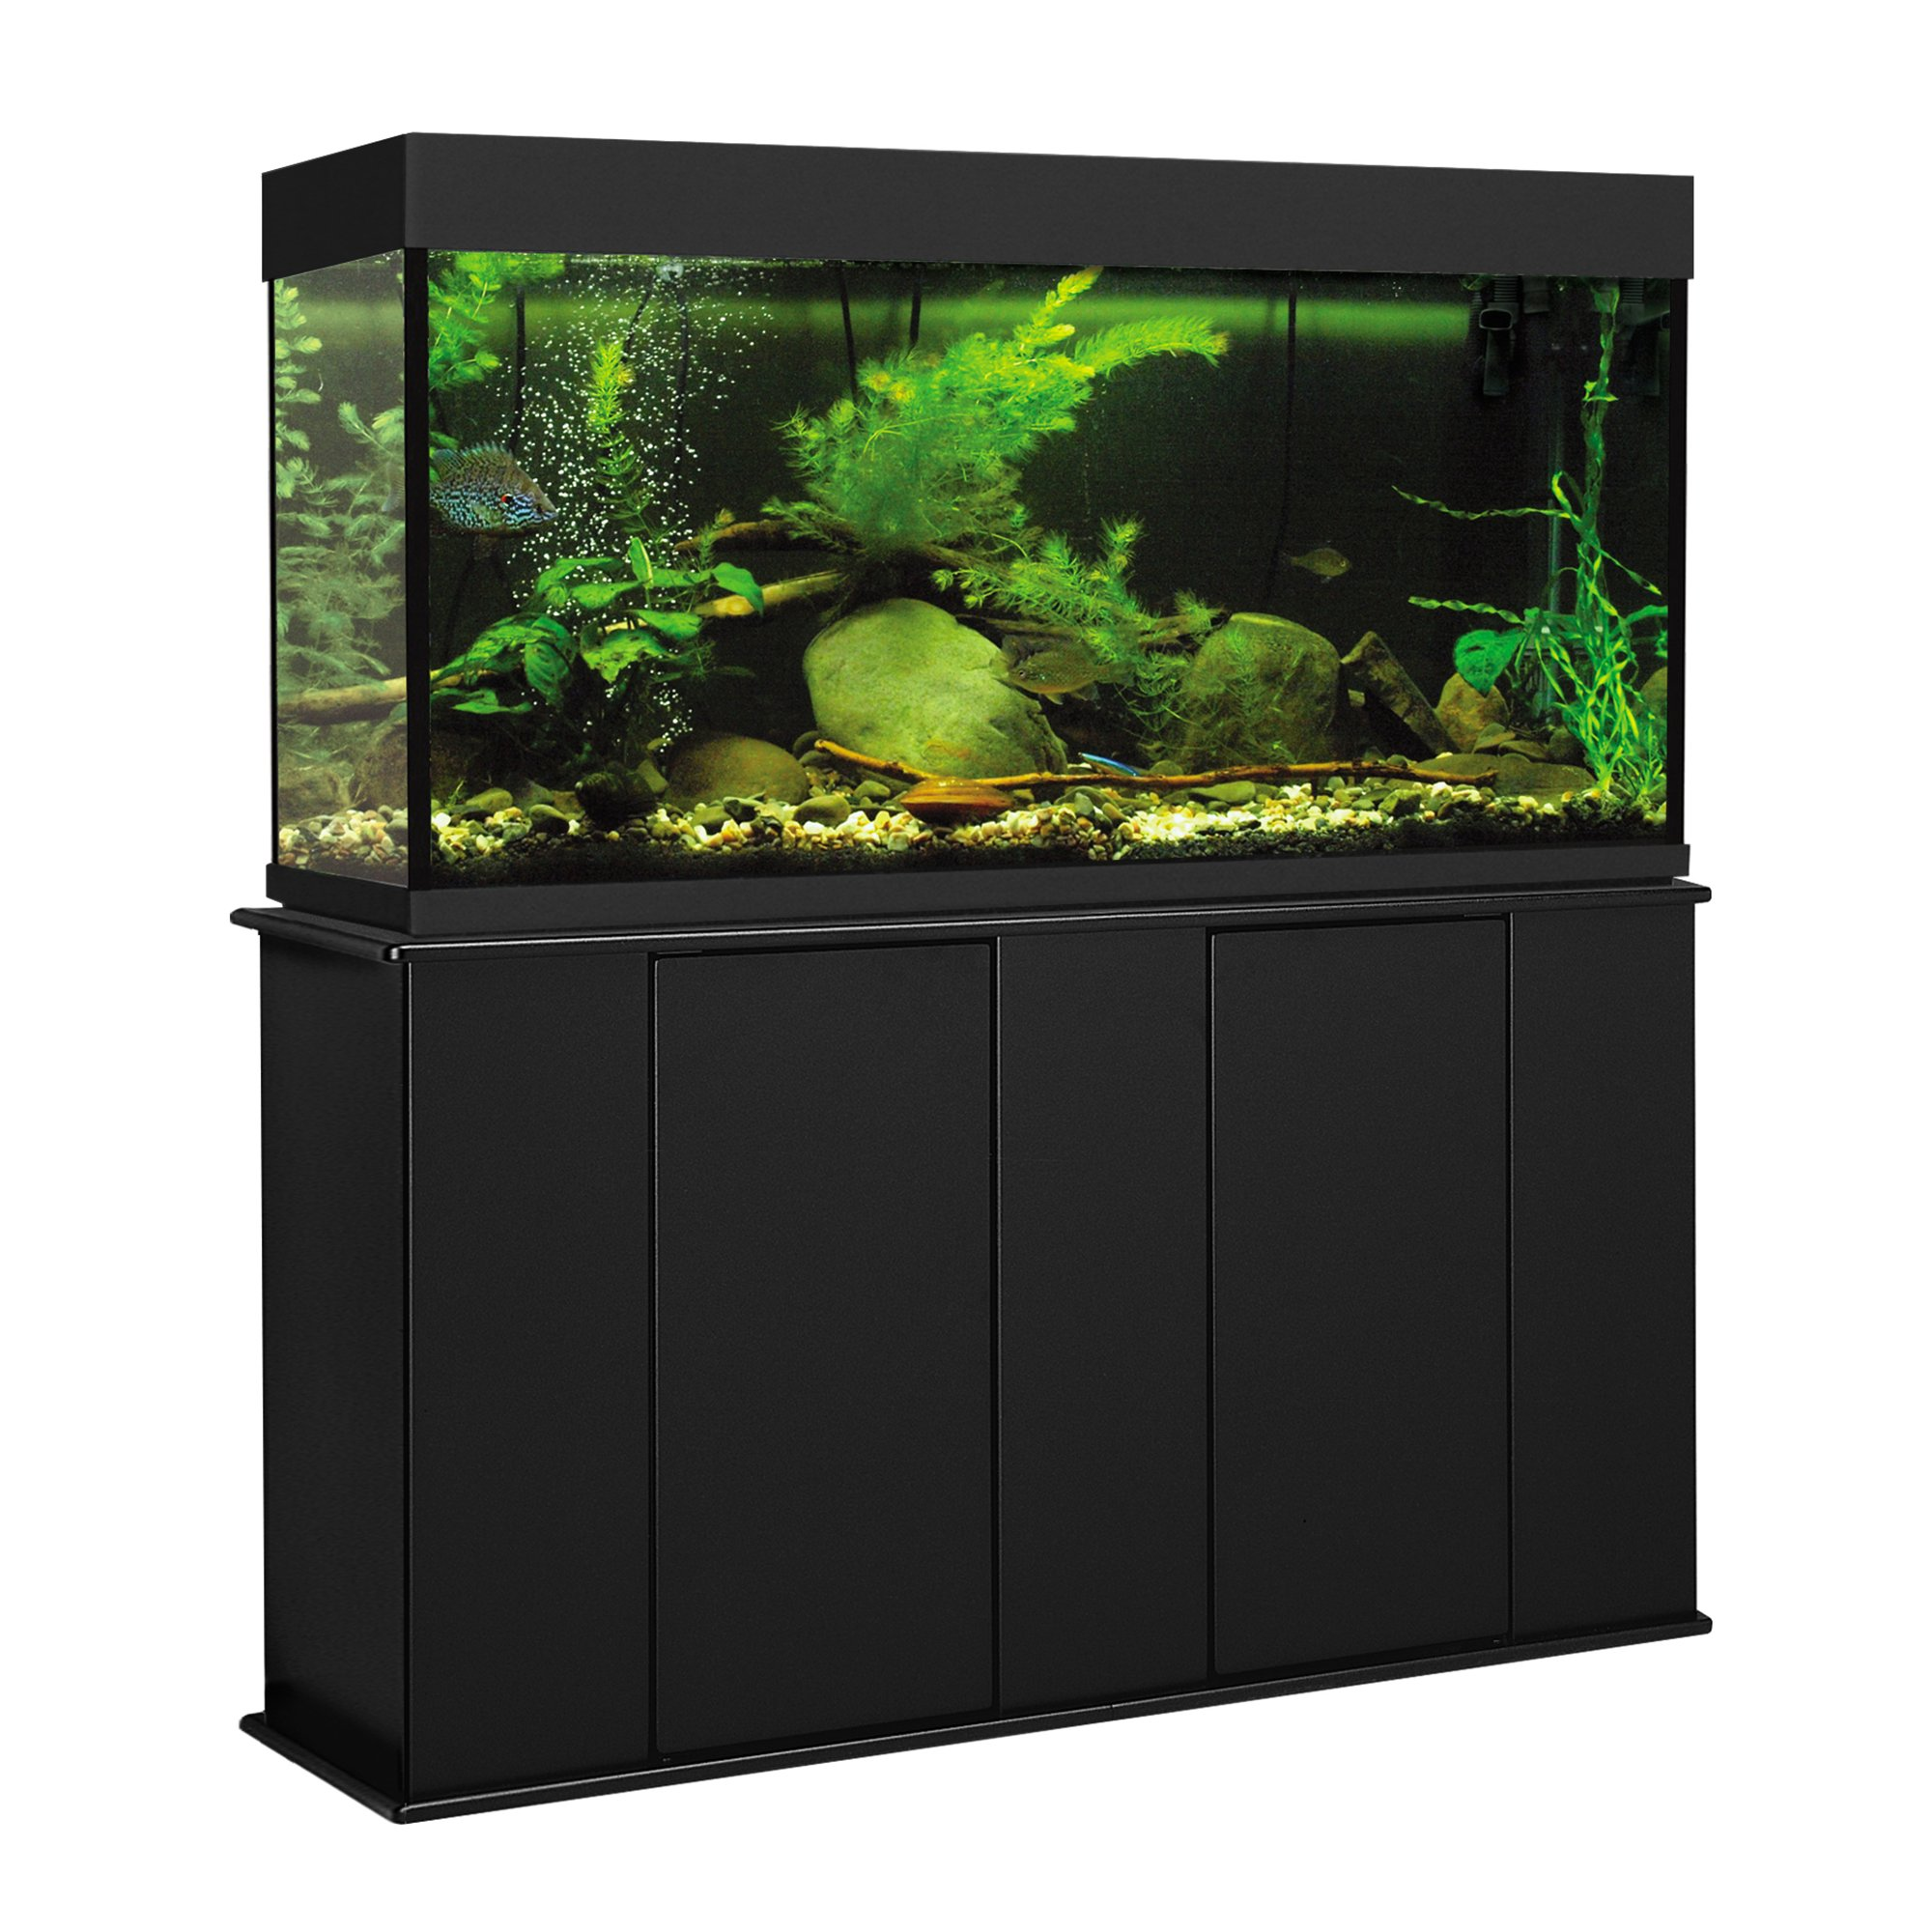 Aquatic fundamentals 55 gallon upright aquarium stand petco for 55 gal fish tank stand